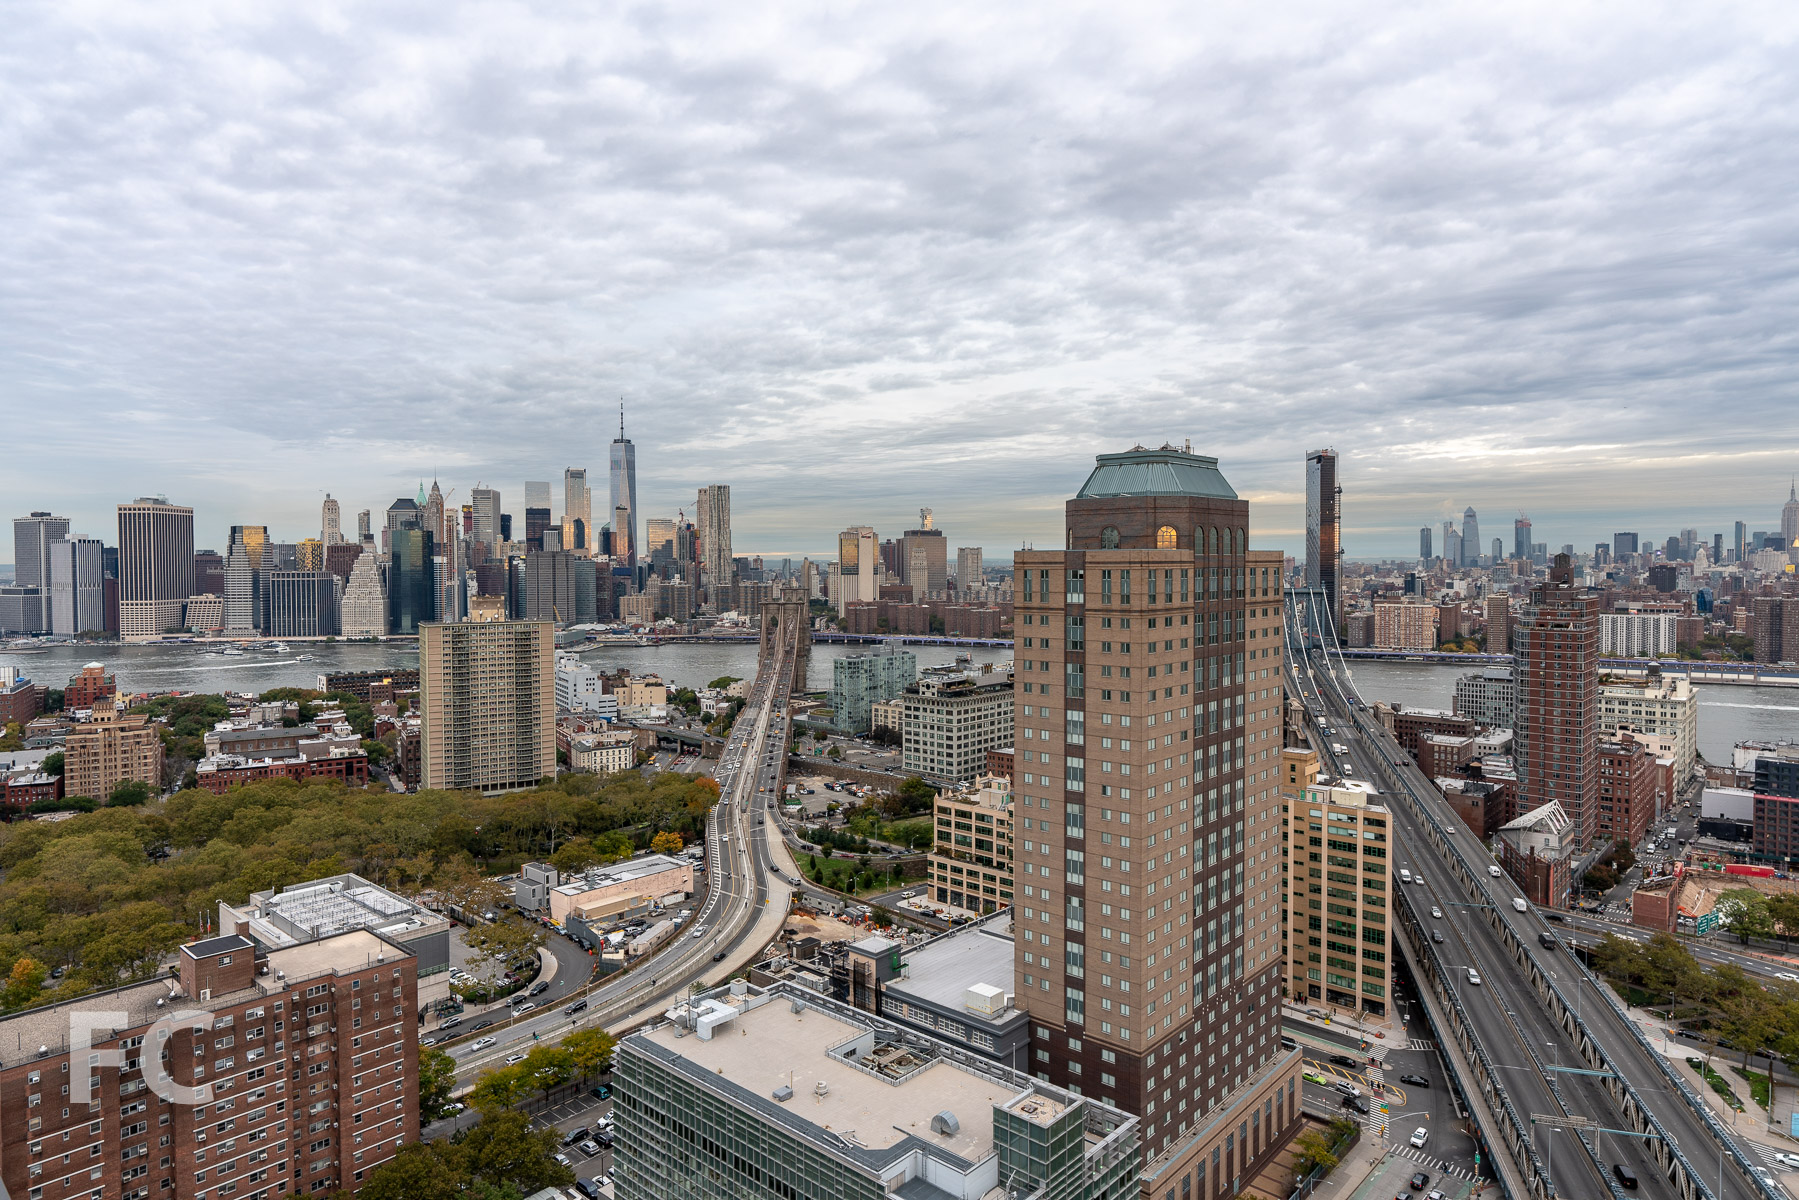 View towards Manhattan from the residential amenity terrace.